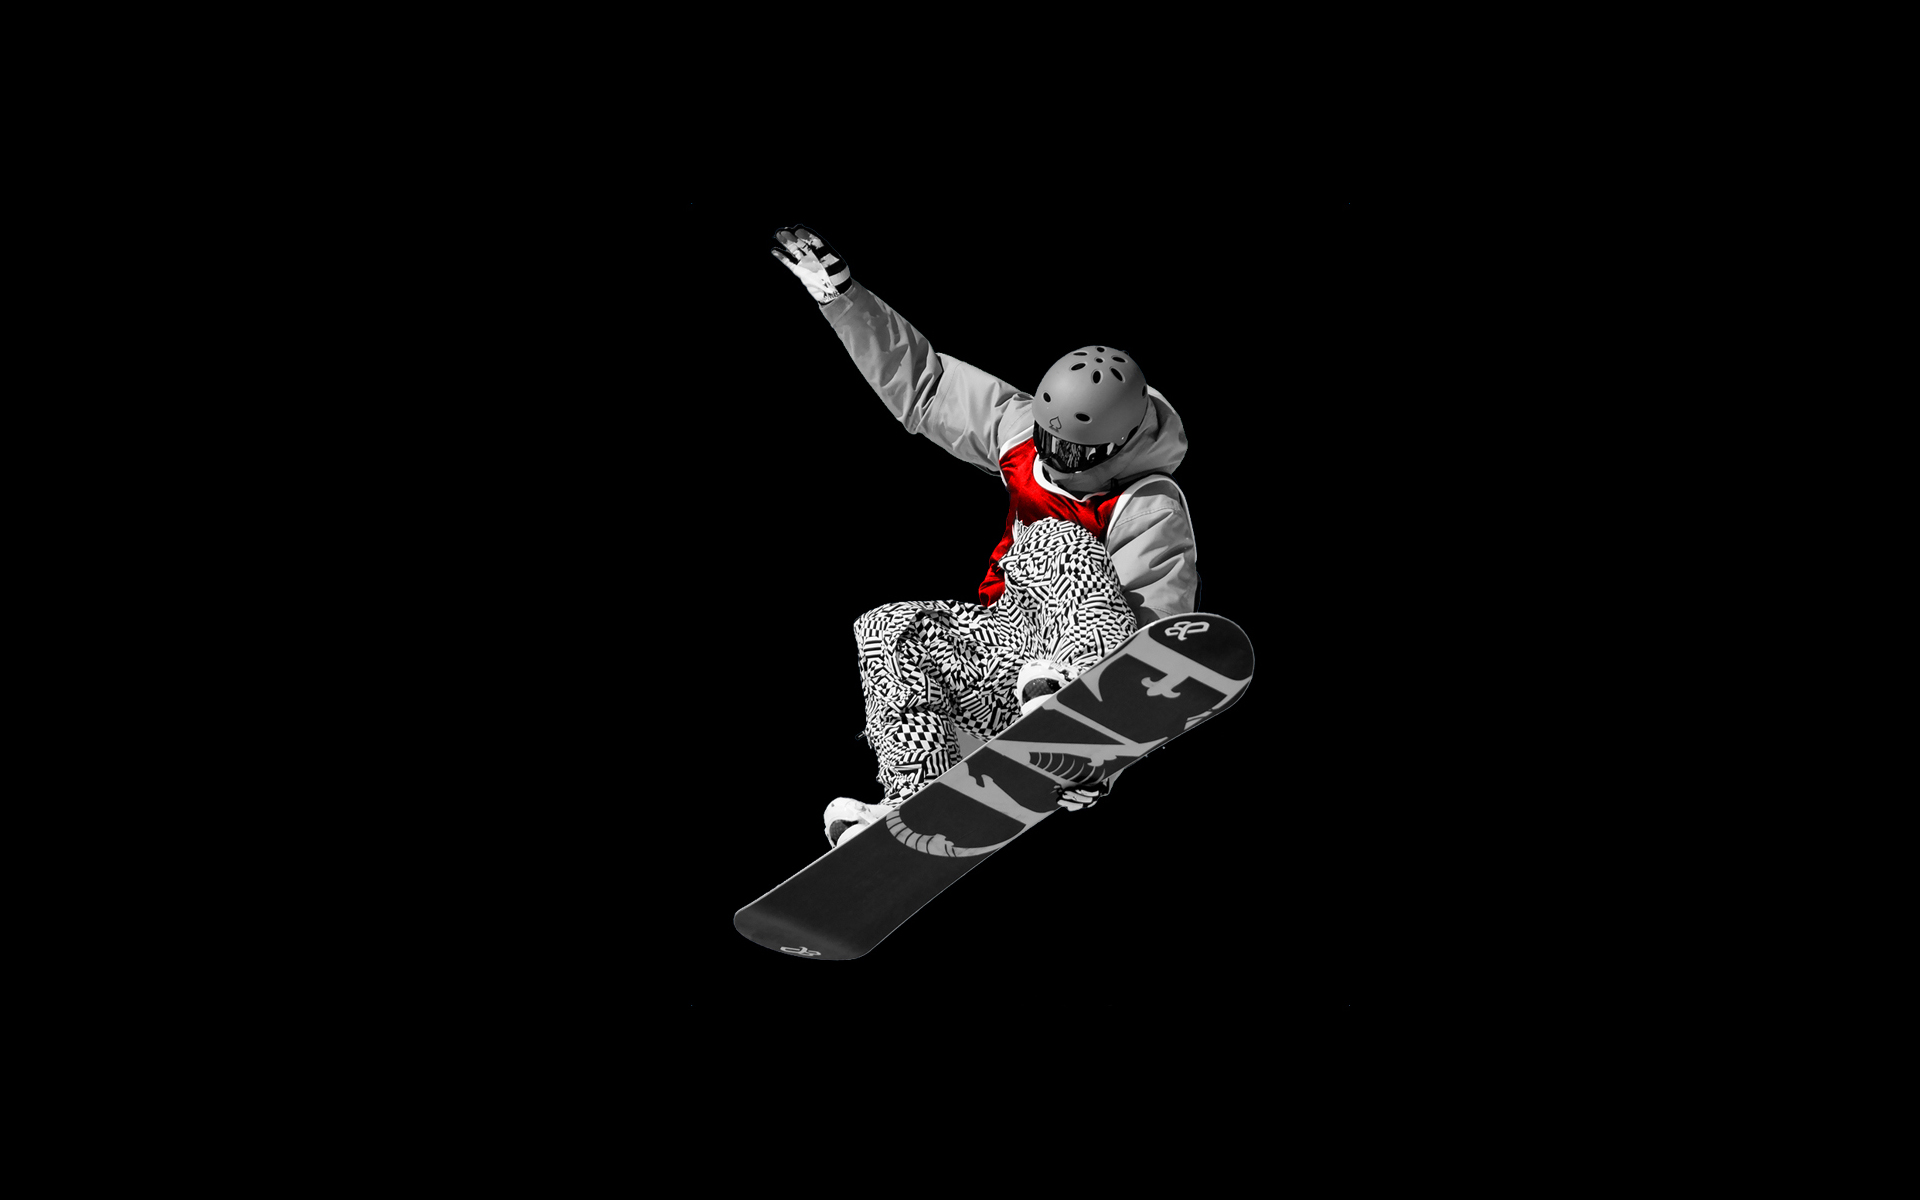 Sporty Zimowe, Winter Sports, Snowboard 1920x1200 016